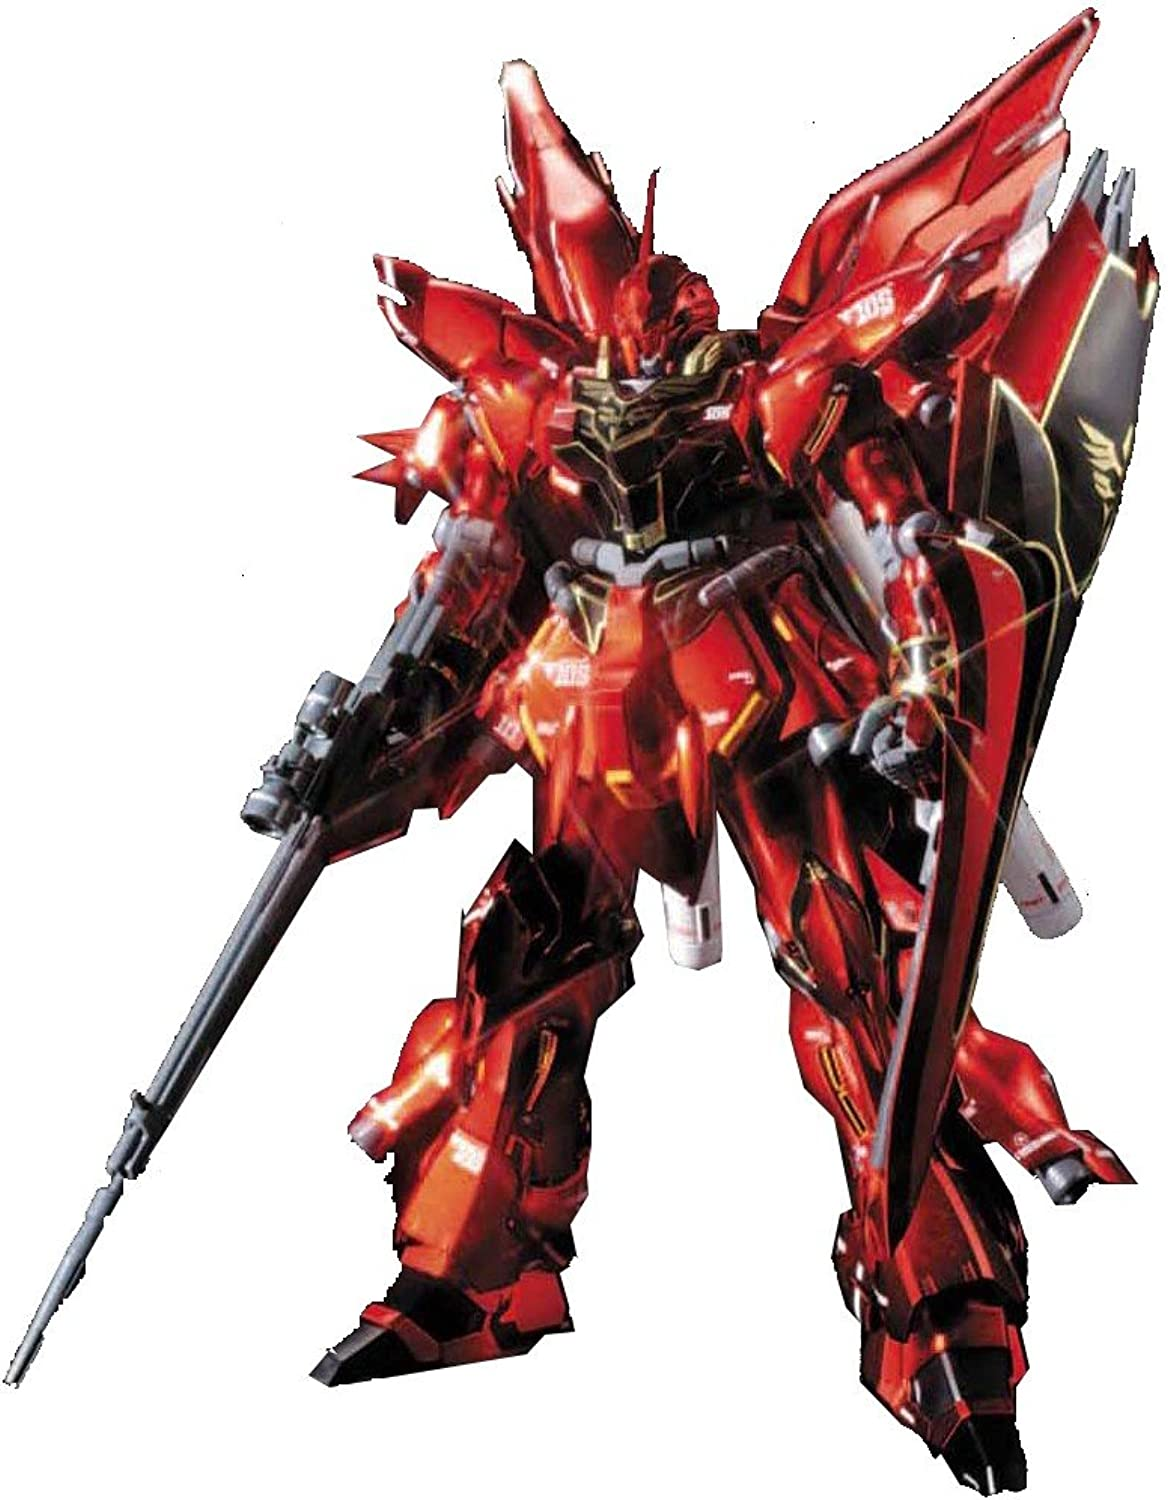 Sinanju Titanium Finish (HGUC) (1 144 scale Gundam Model Kits) [JAPAN] (japan import)